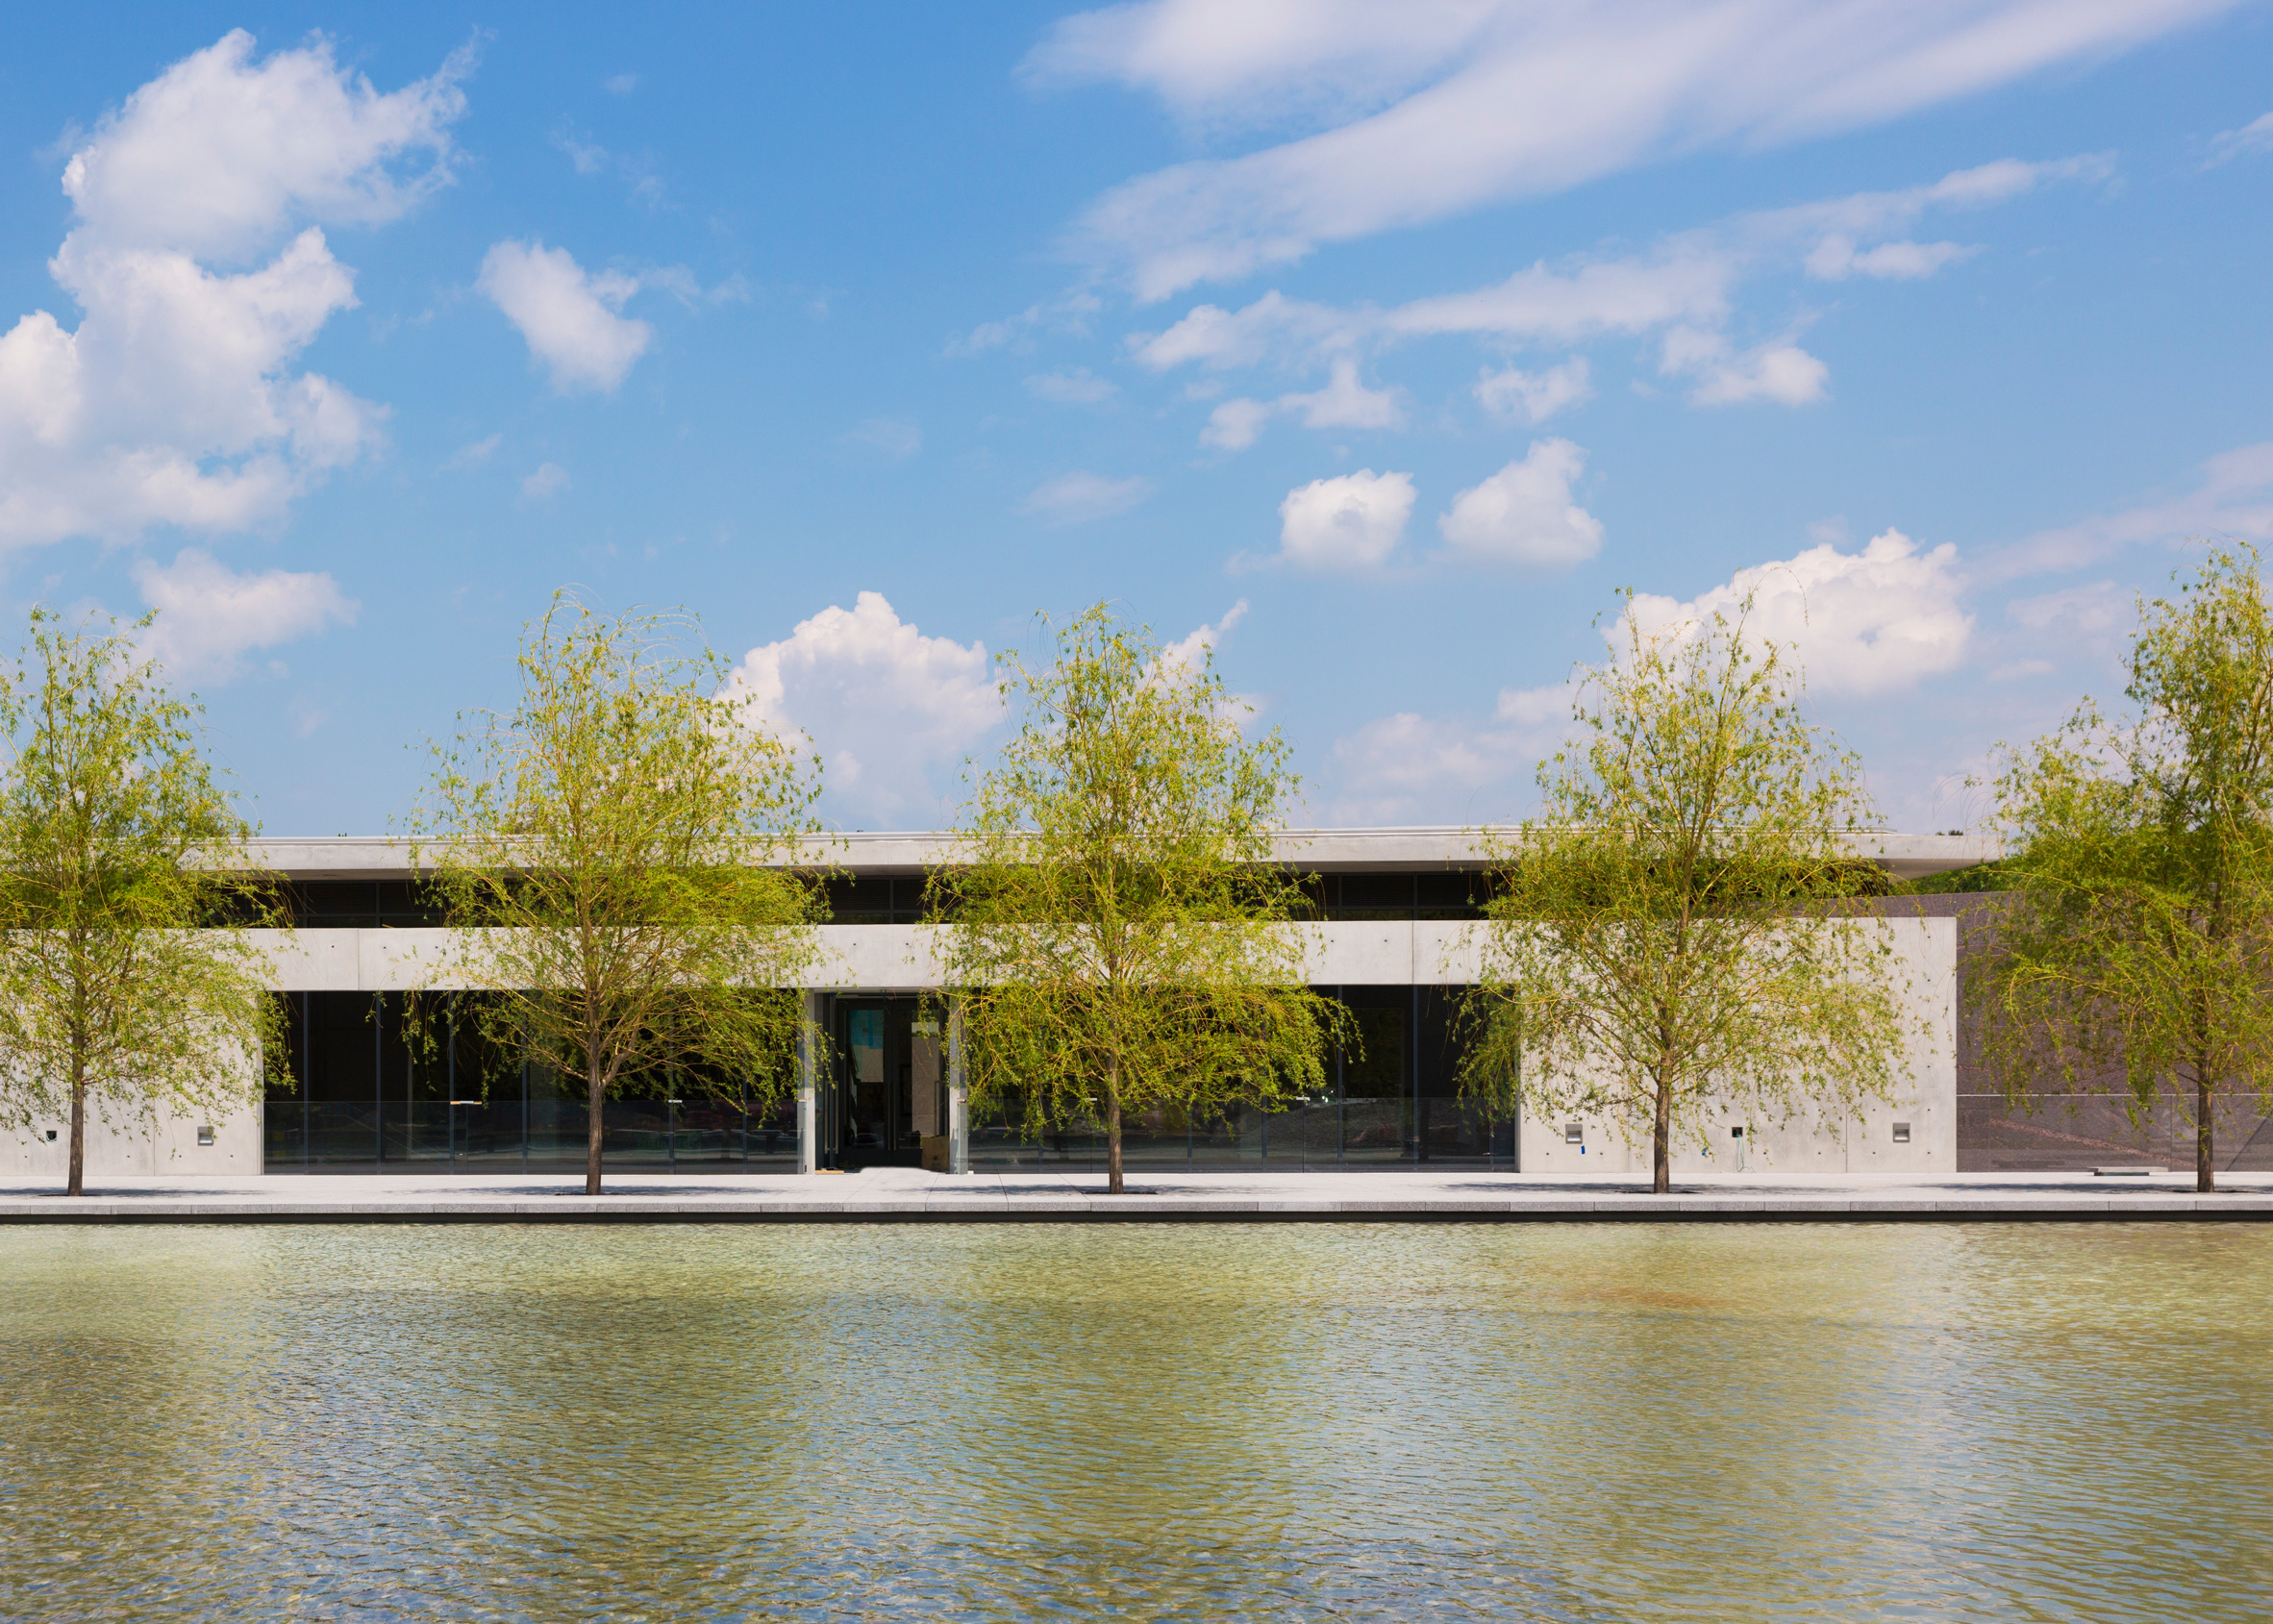 Clark Art Institute expansion by Tadao Ando and Annabelle Selldorf, Williamstown, Massachusetts